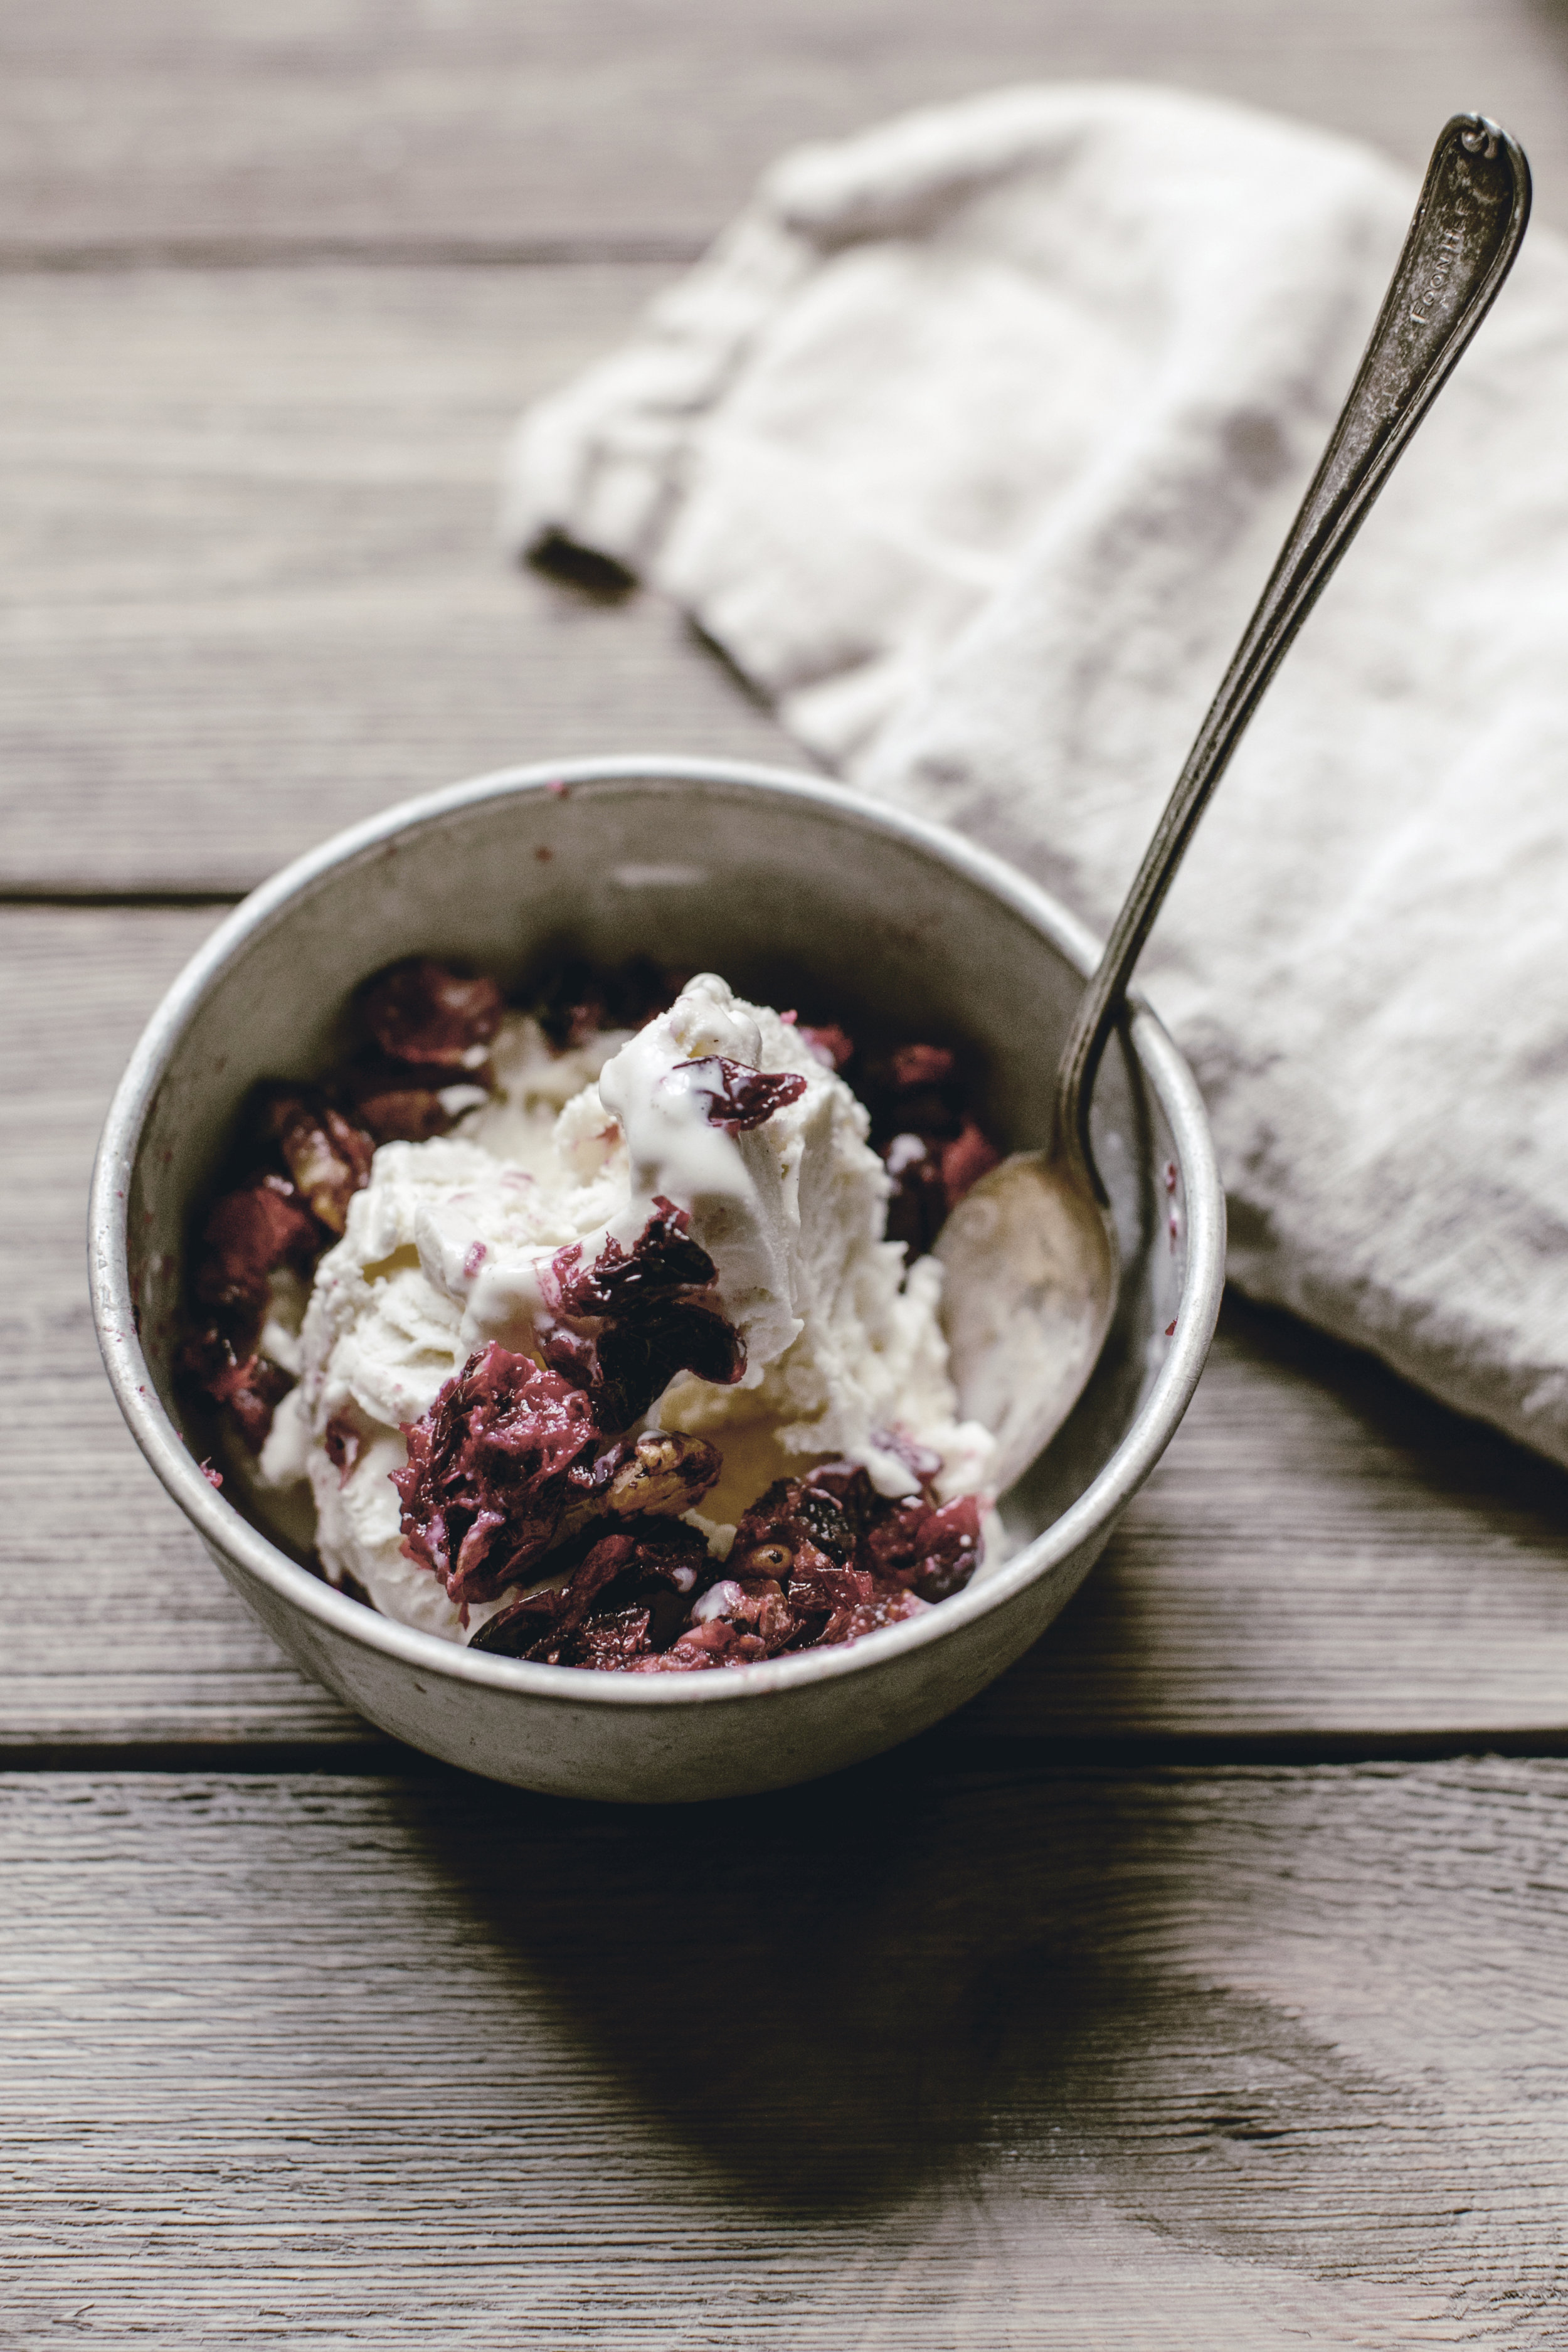 Roasted Cranberries and ice cream